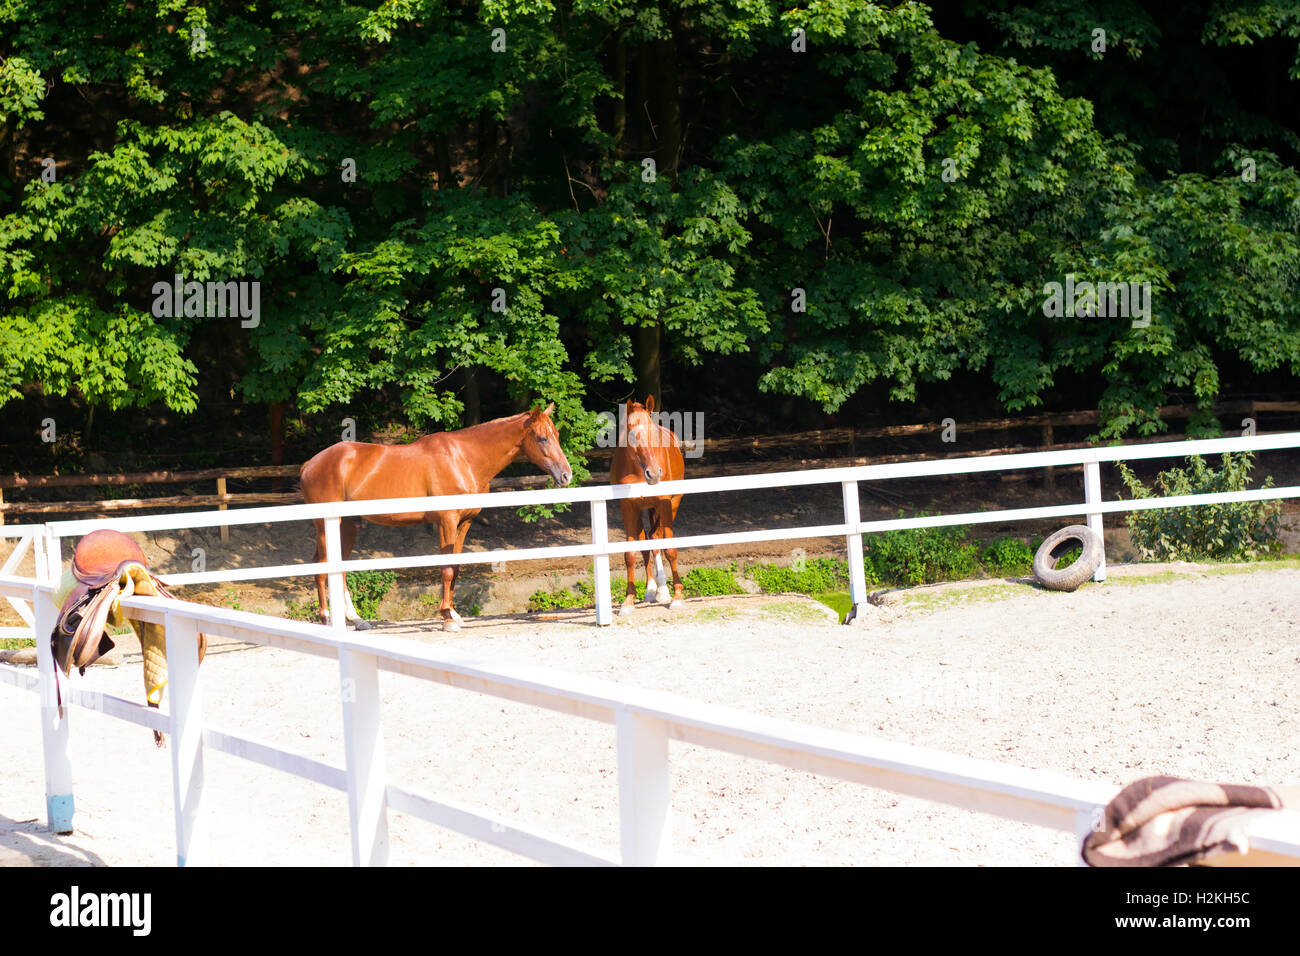 Pair of young brown horses behind white fence corral in summer sunny day - Stock Image